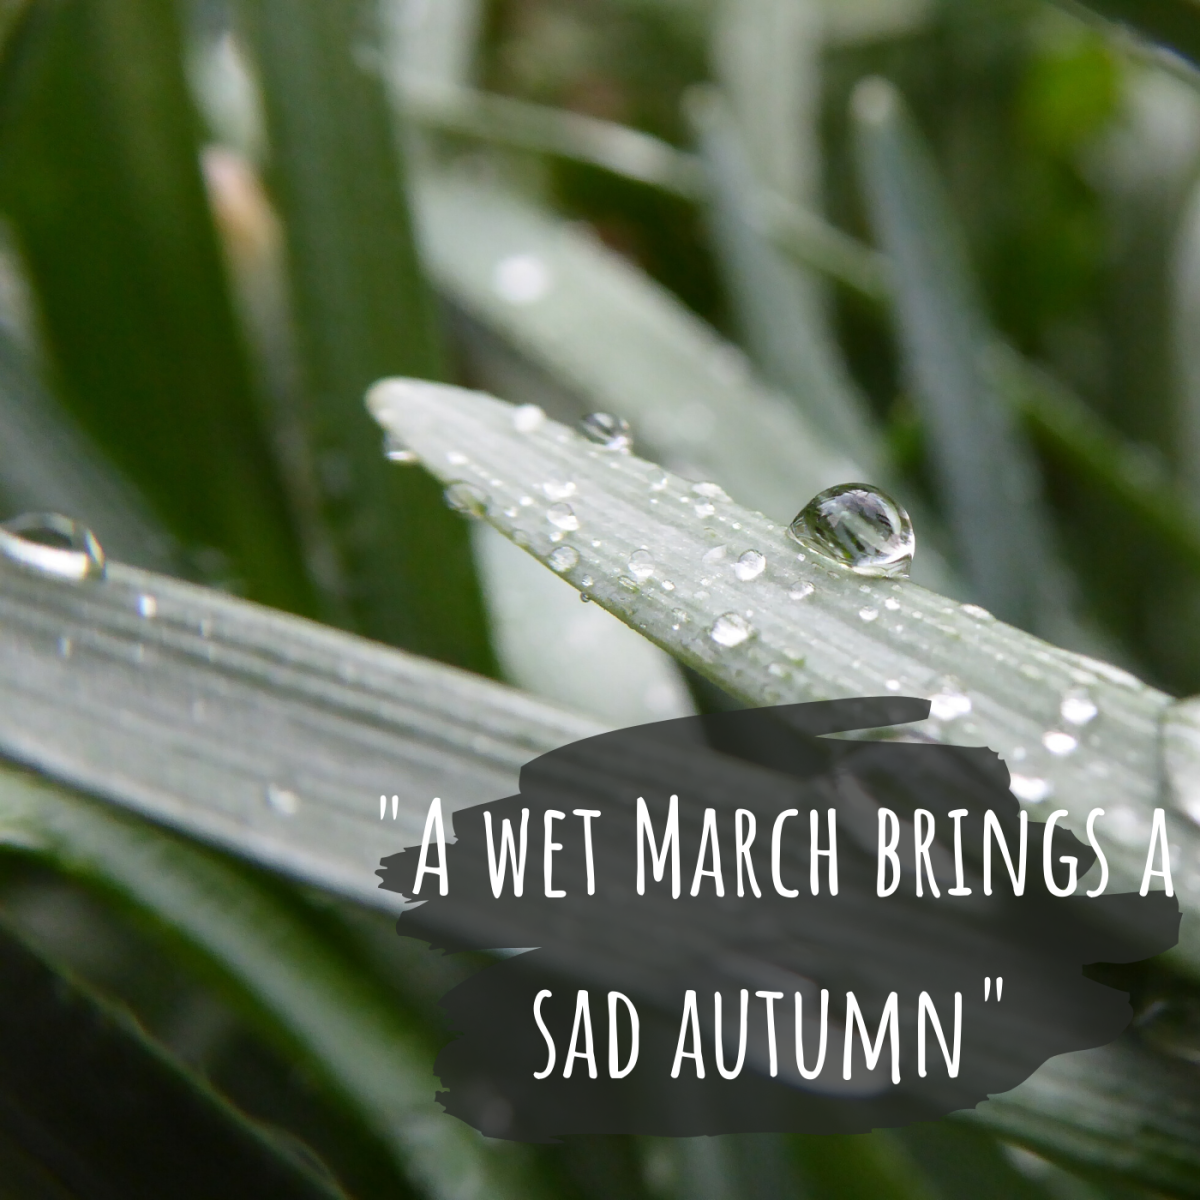 A wet March brings a sad autumn.